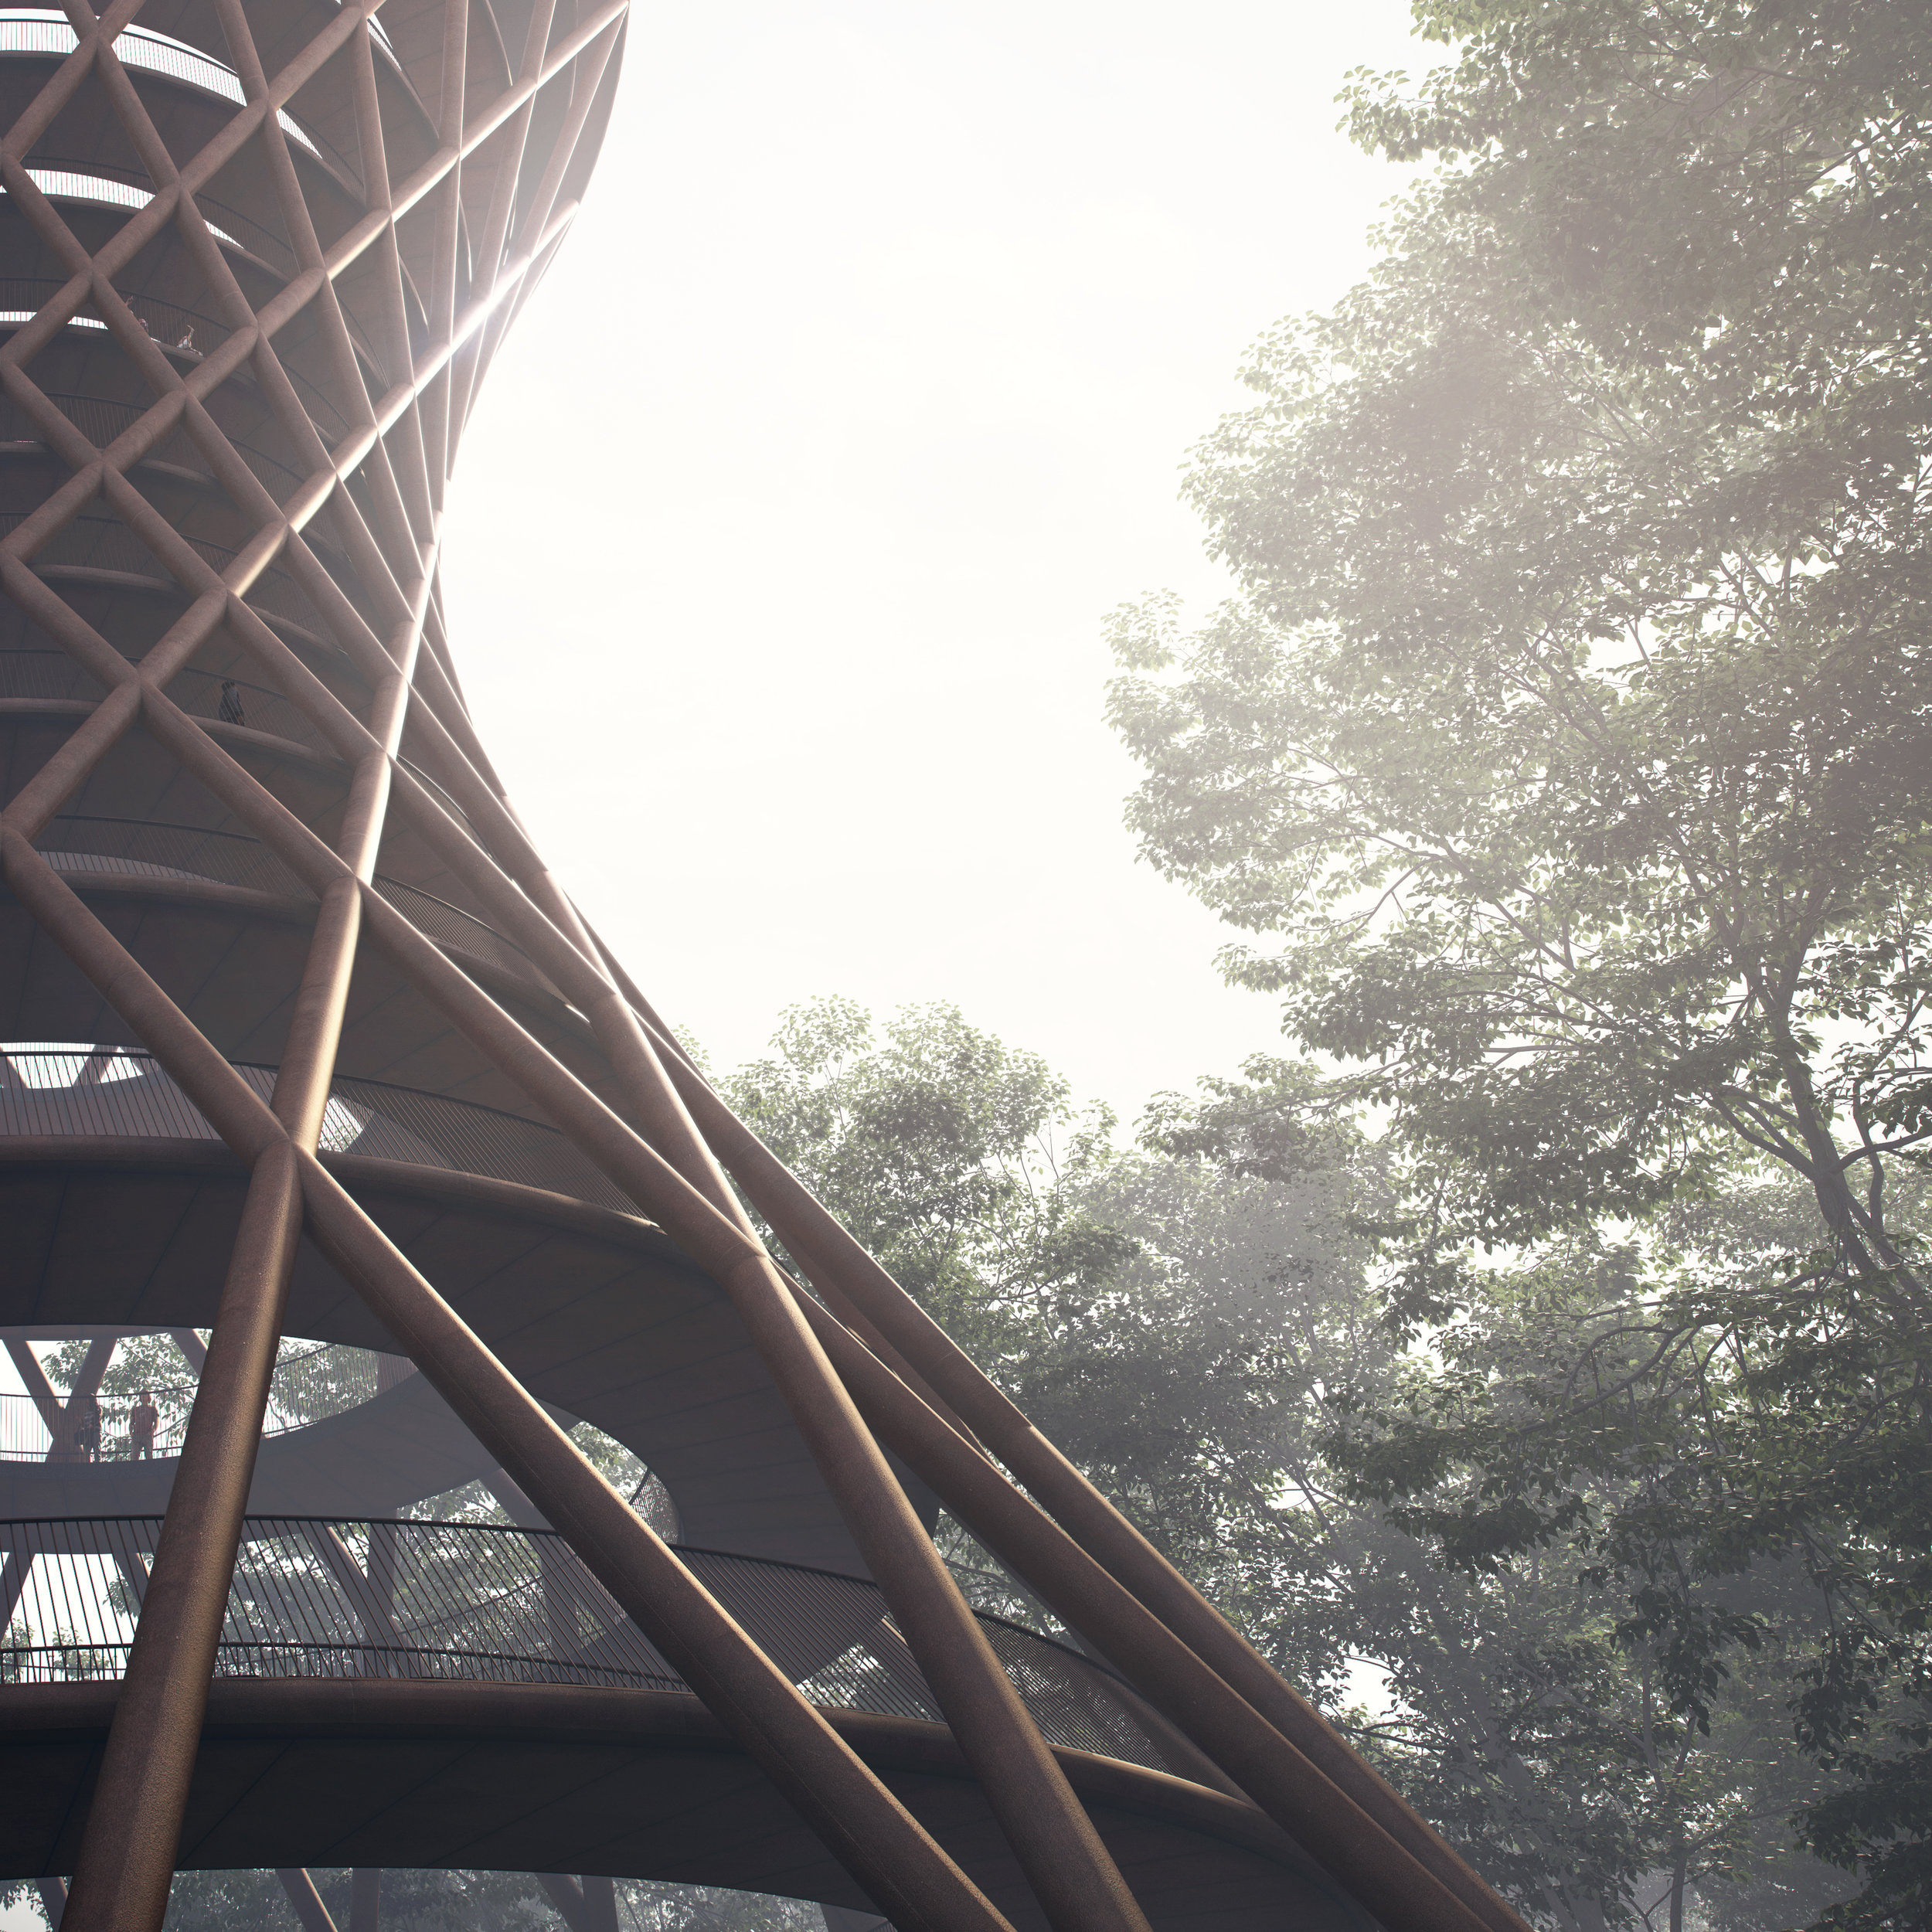 View of the observation tower from the ground